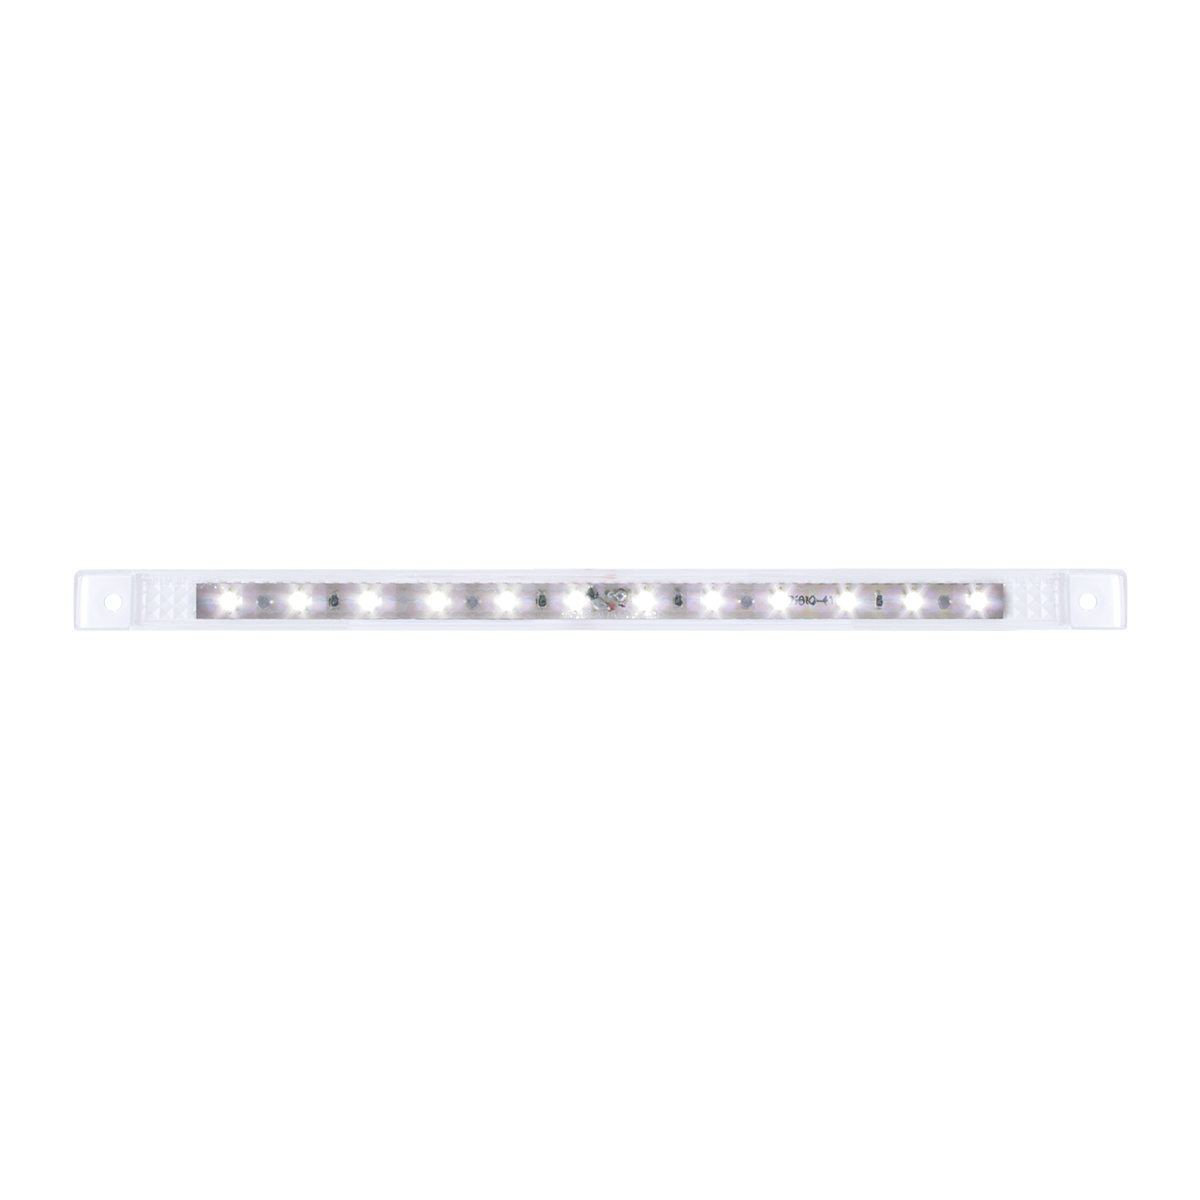 "75966 10-1/8"" Ultra Thin LED Marker Light"